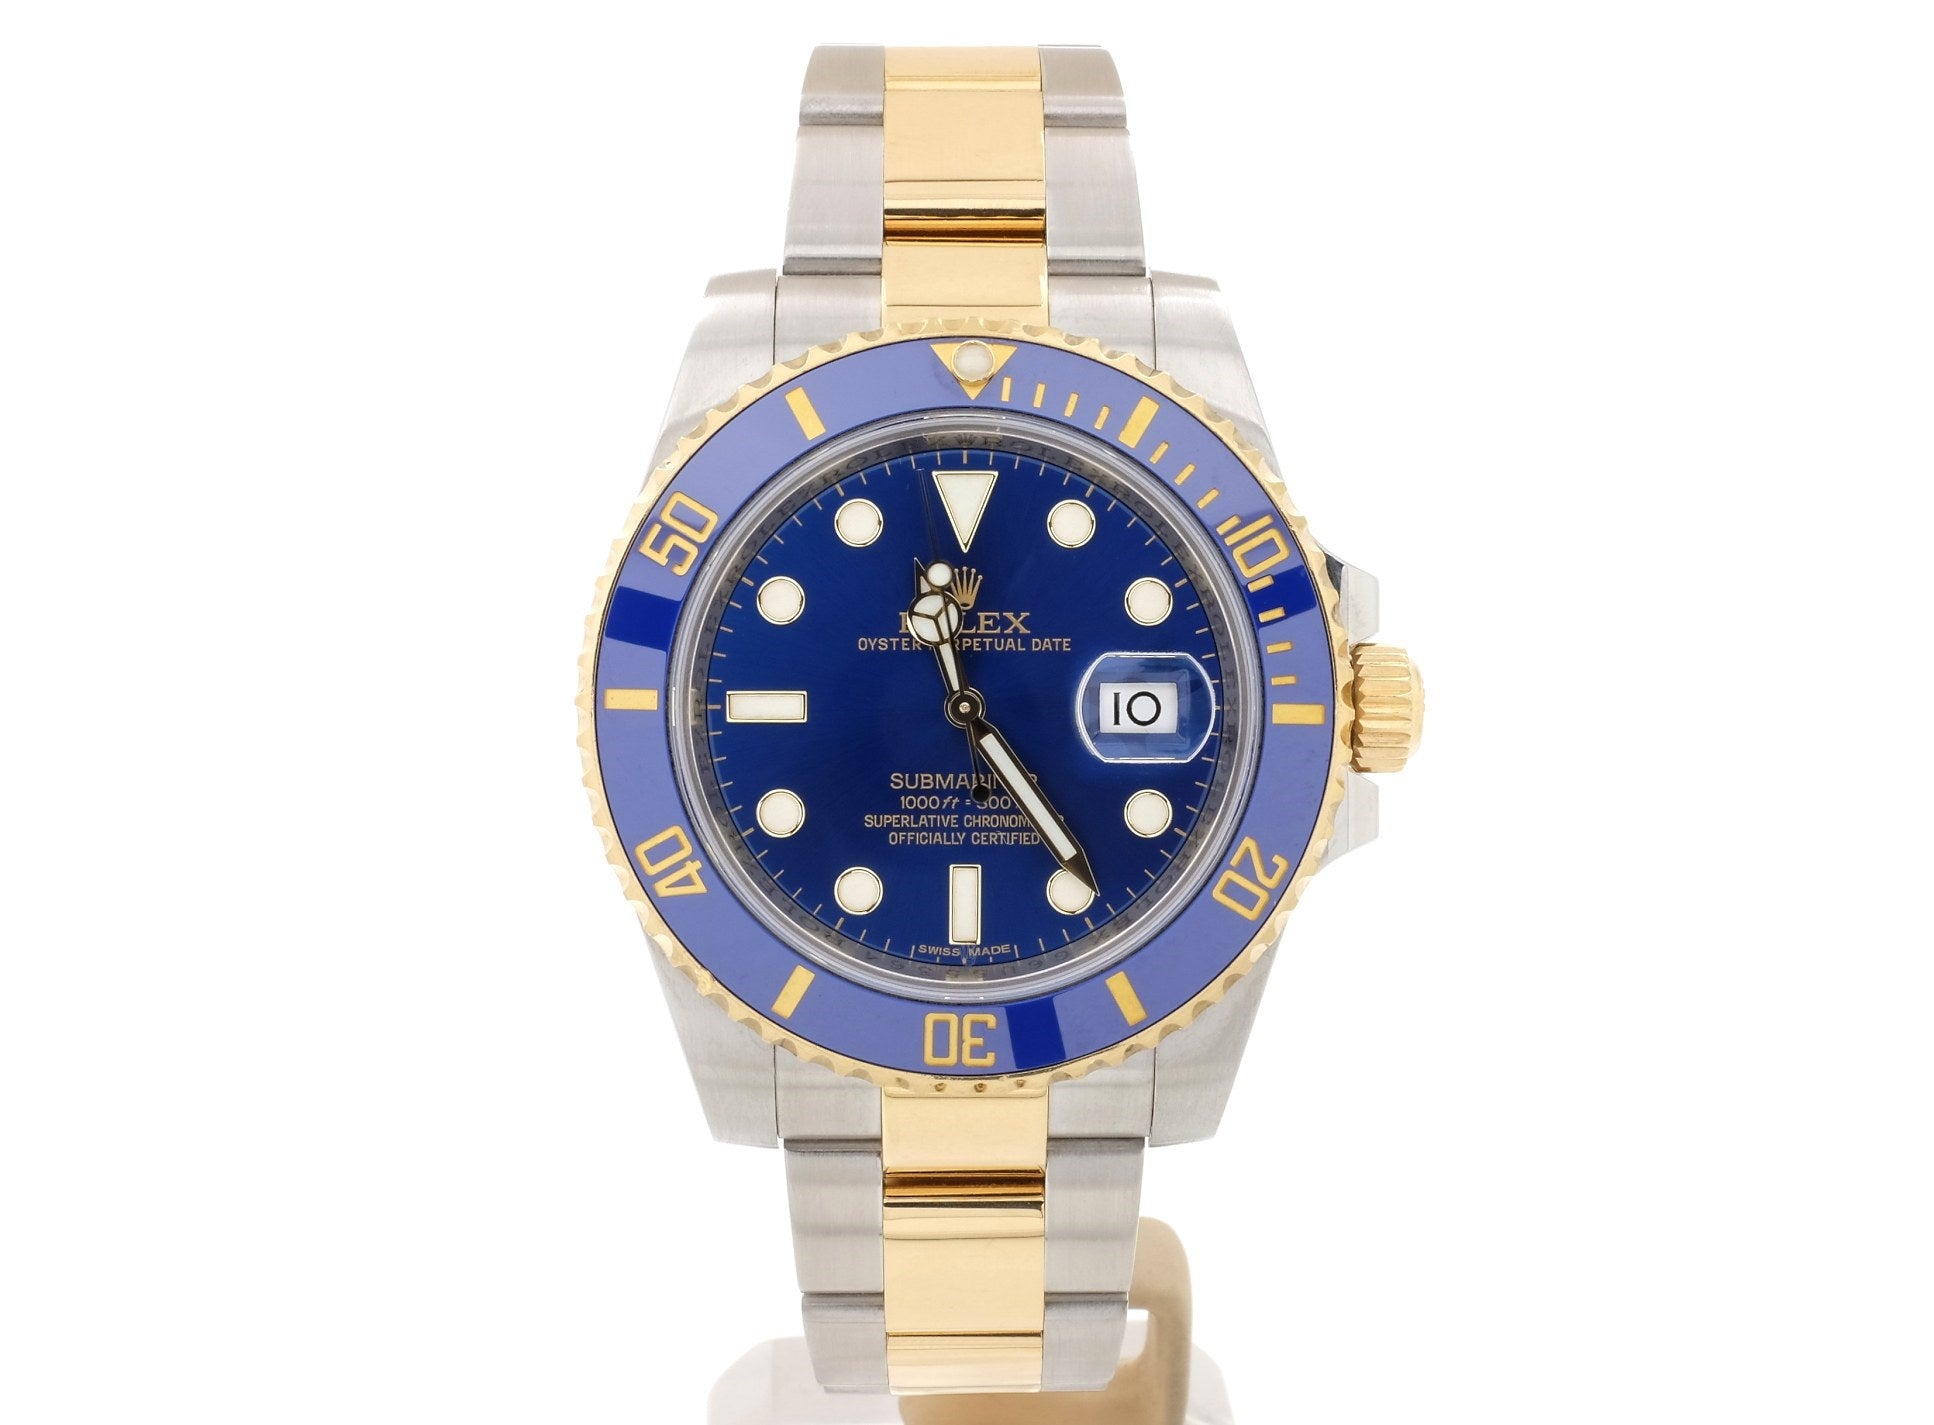 2010 Rolex SUBMARINER DATE 116613LB in Very Good Condition